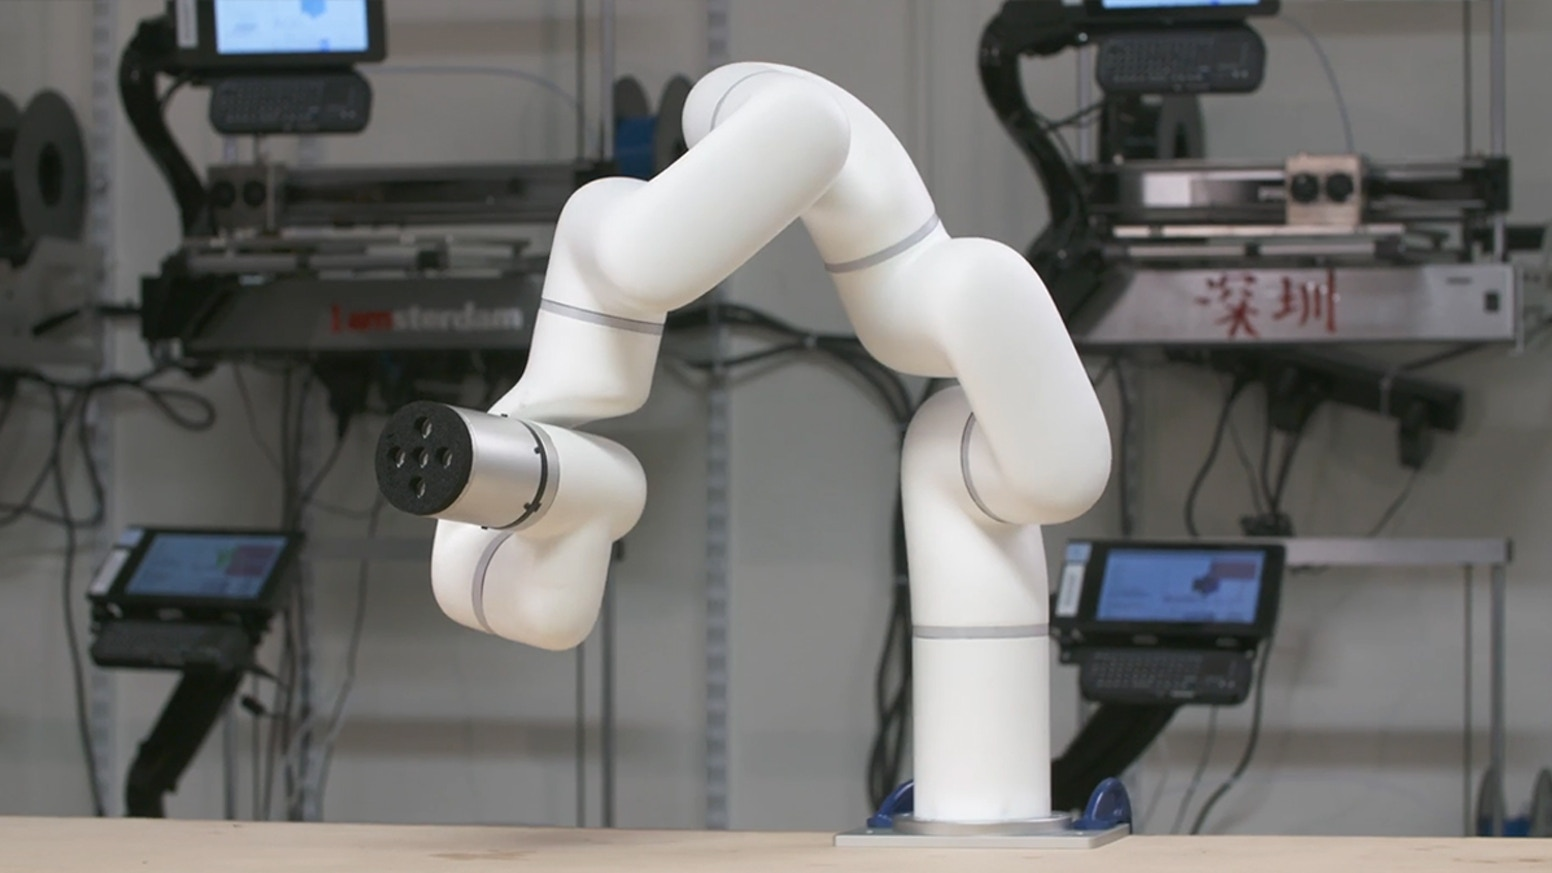 xArm – Most Cost-Effective Intuitive Industrial Robotic Arm by